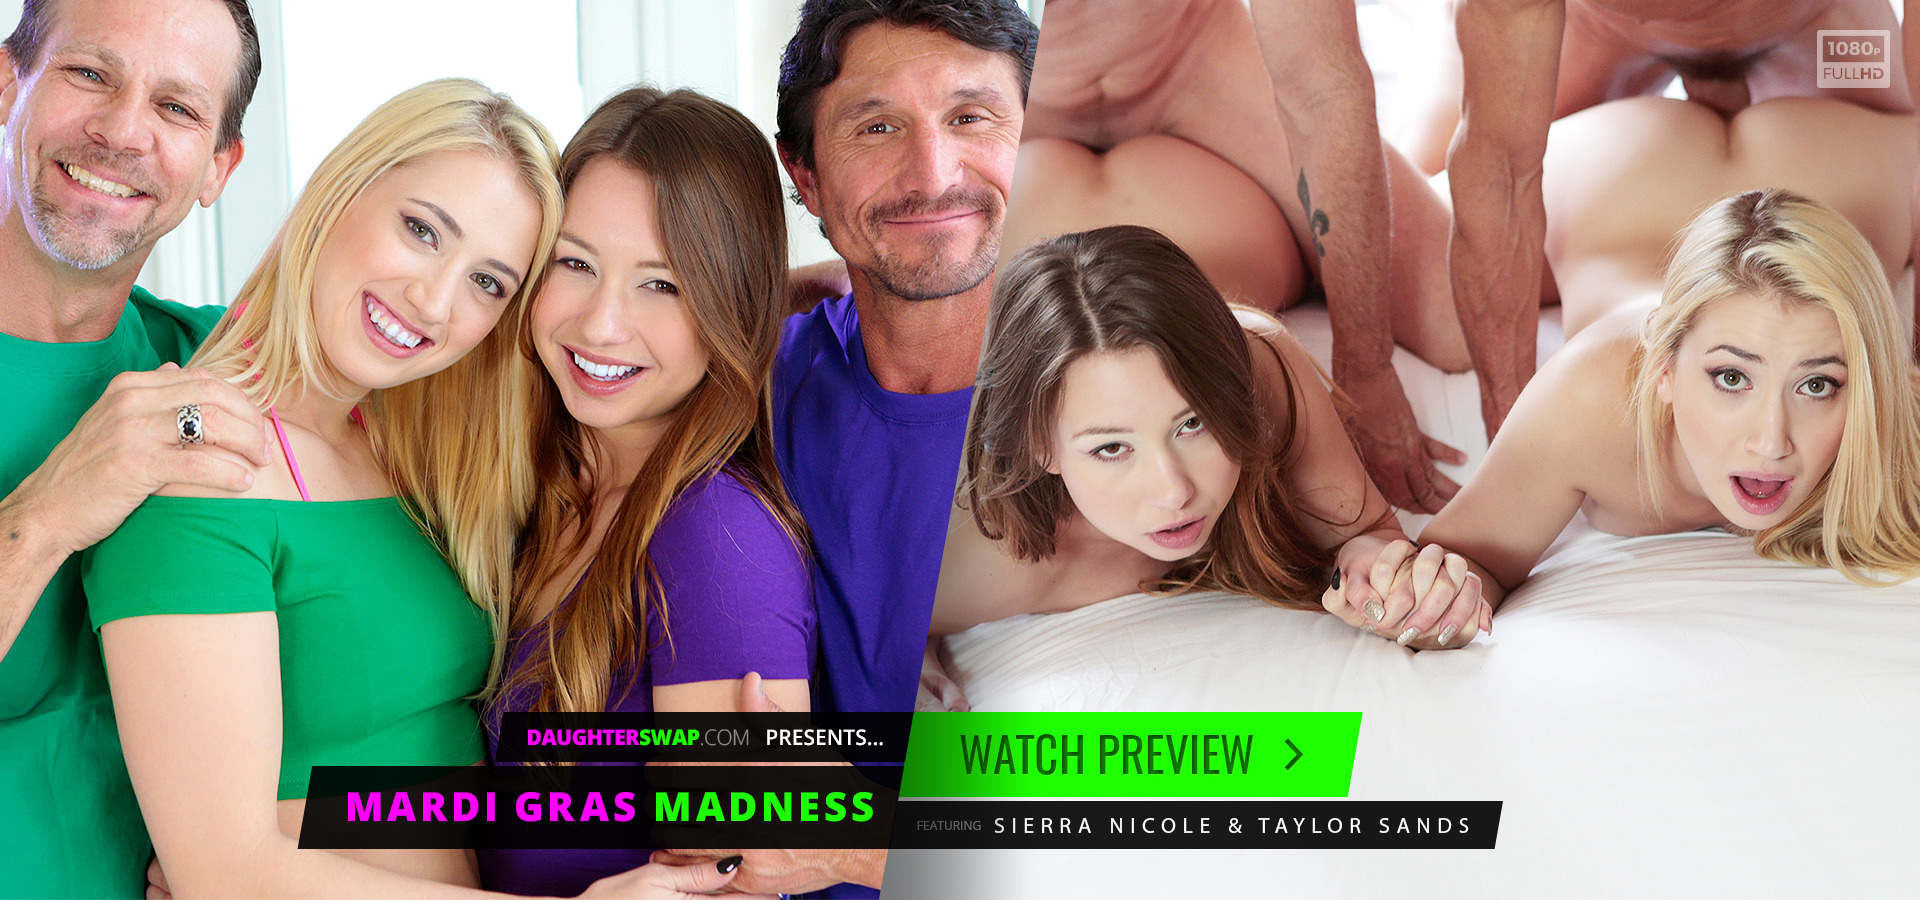 Daughter Swap - Dad And Daughter Porn - Dads Fuck Teen -9557